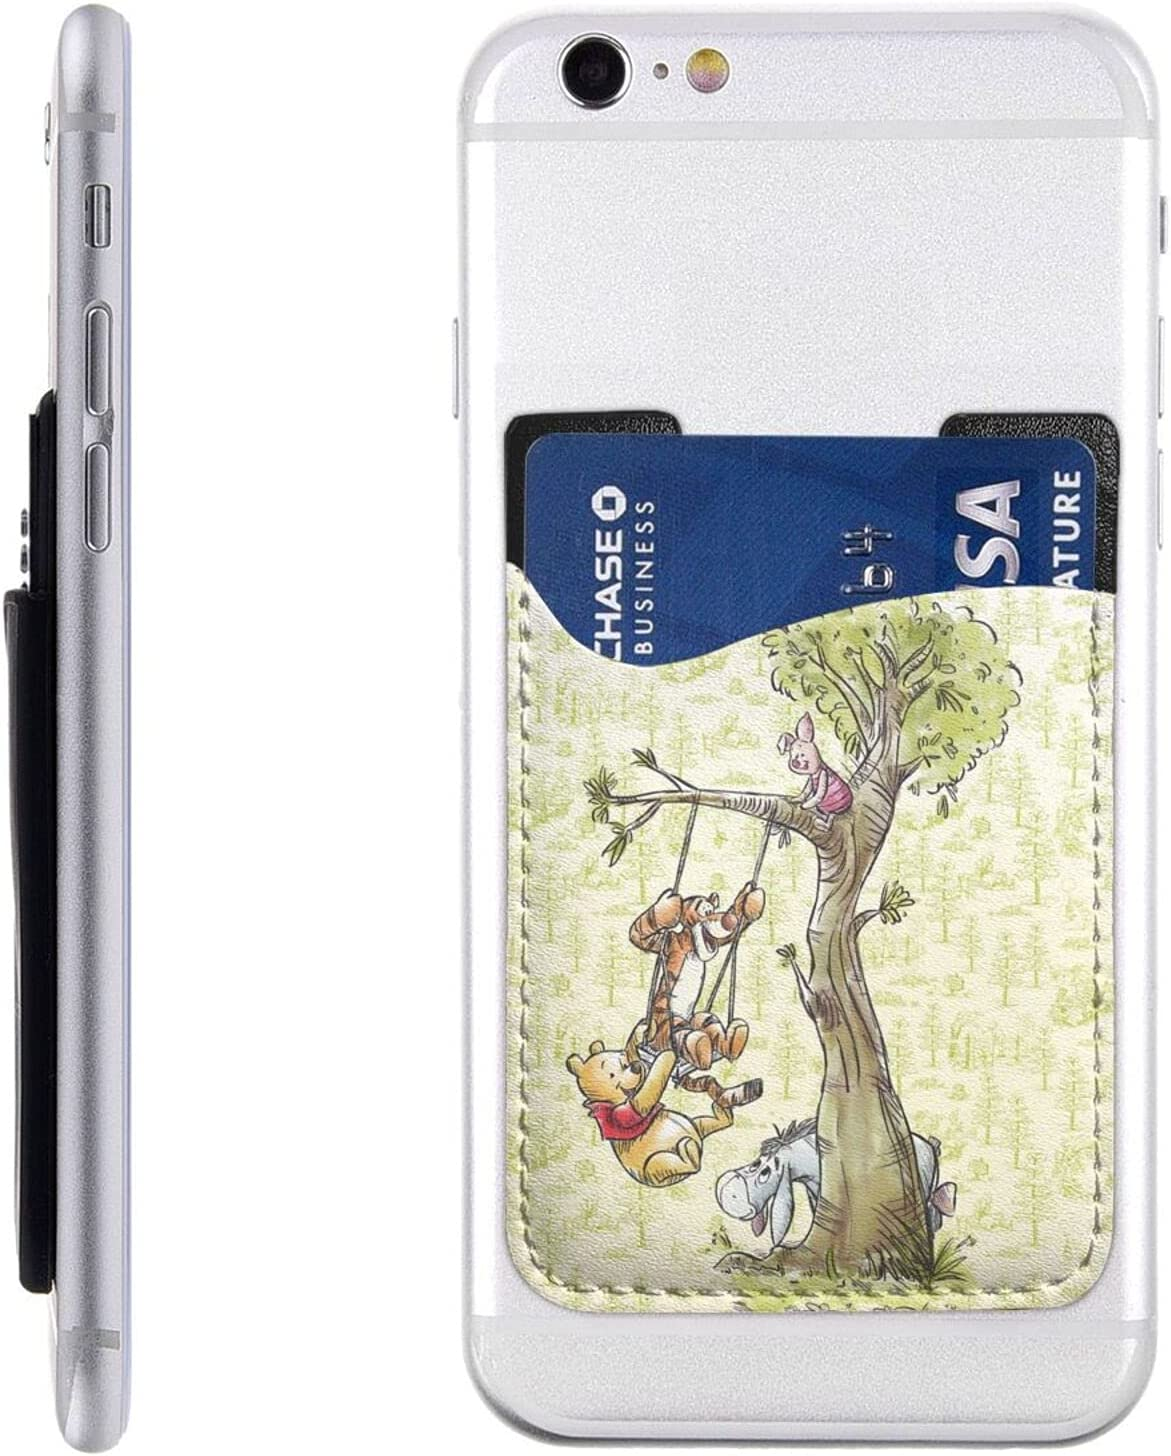 Mobile Phone Card Max 82% OFF Holder Adhesive On Stick Under blast sales Walle Cell